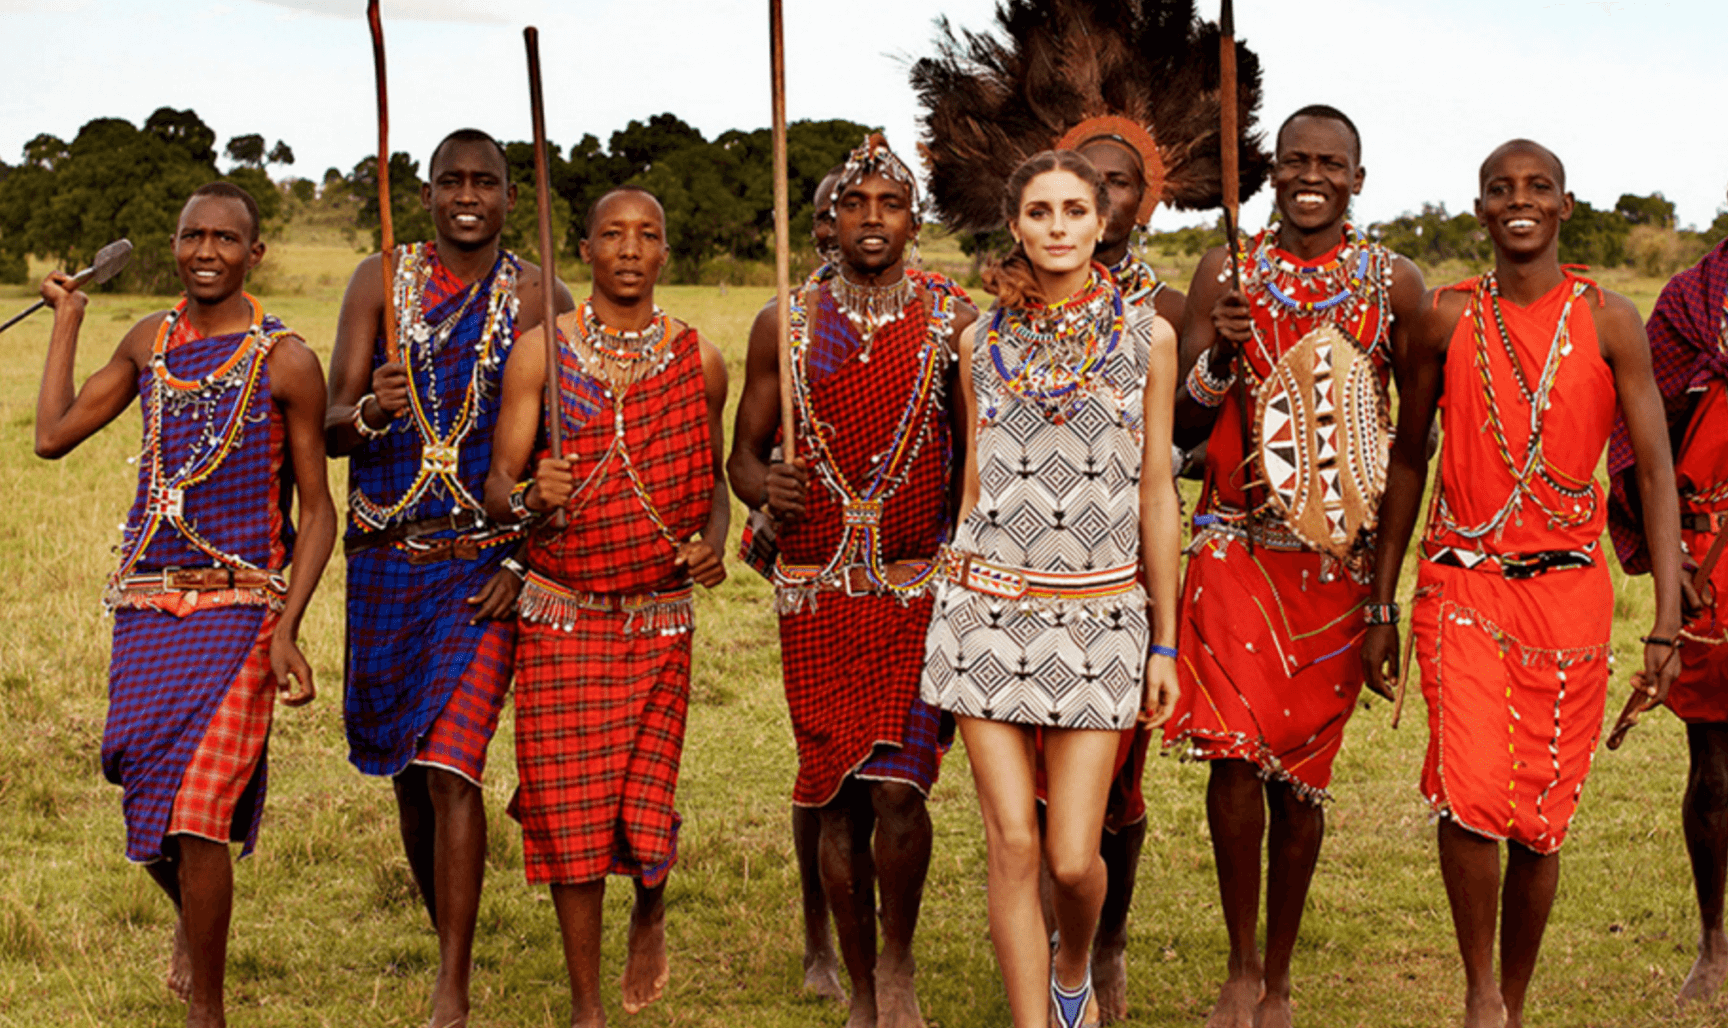 Shop Ladies Pikolinos Maasai Project Charity Olivia Palermo Walking